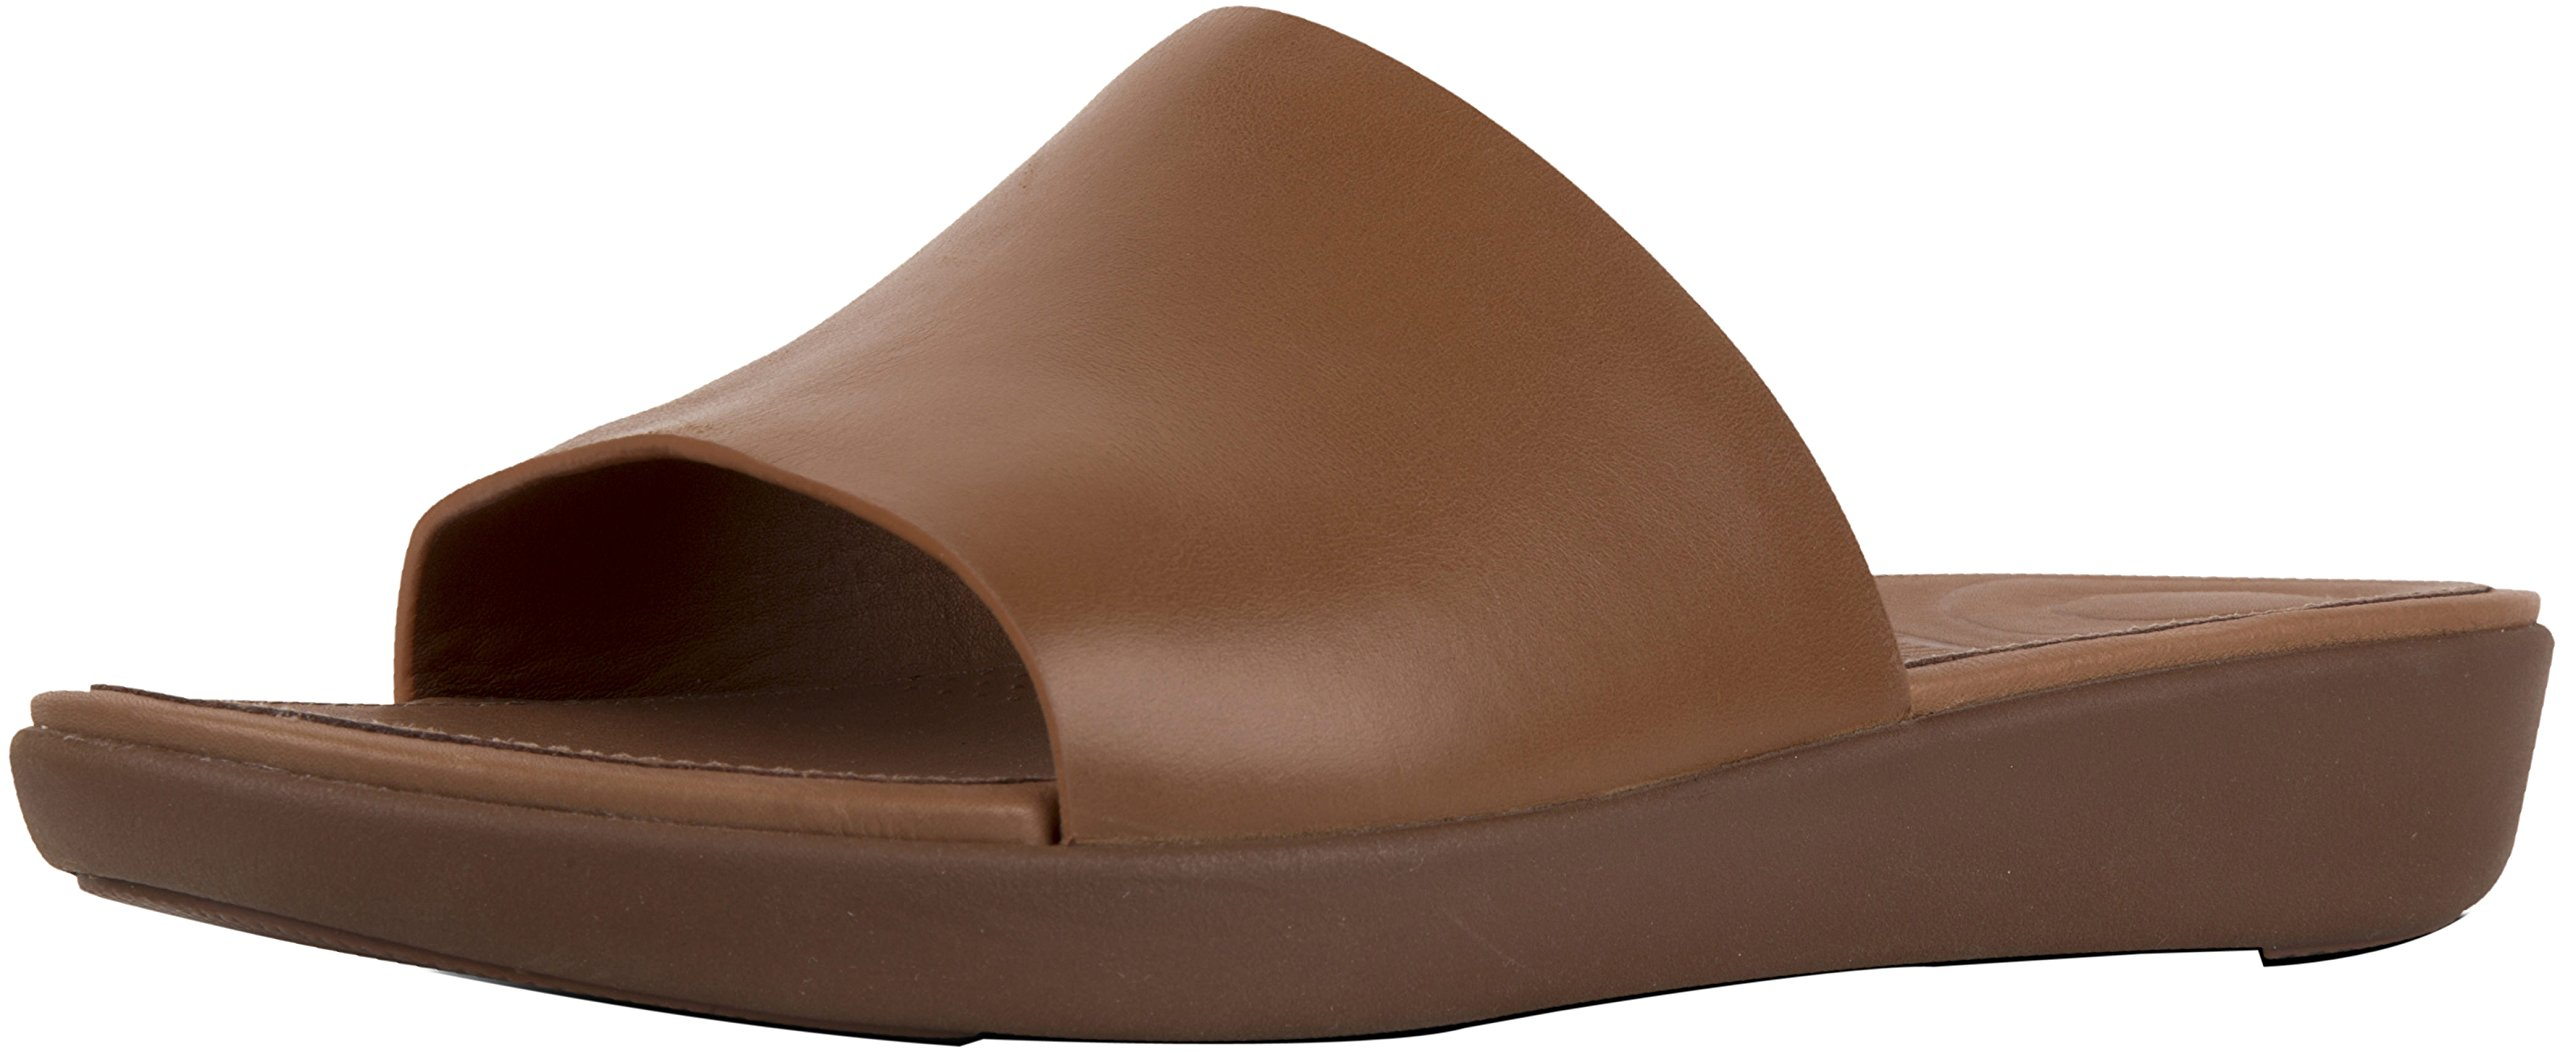 FitFlop Trade; Womens Sola&Trade; Slides - Leather Caramel Size 6